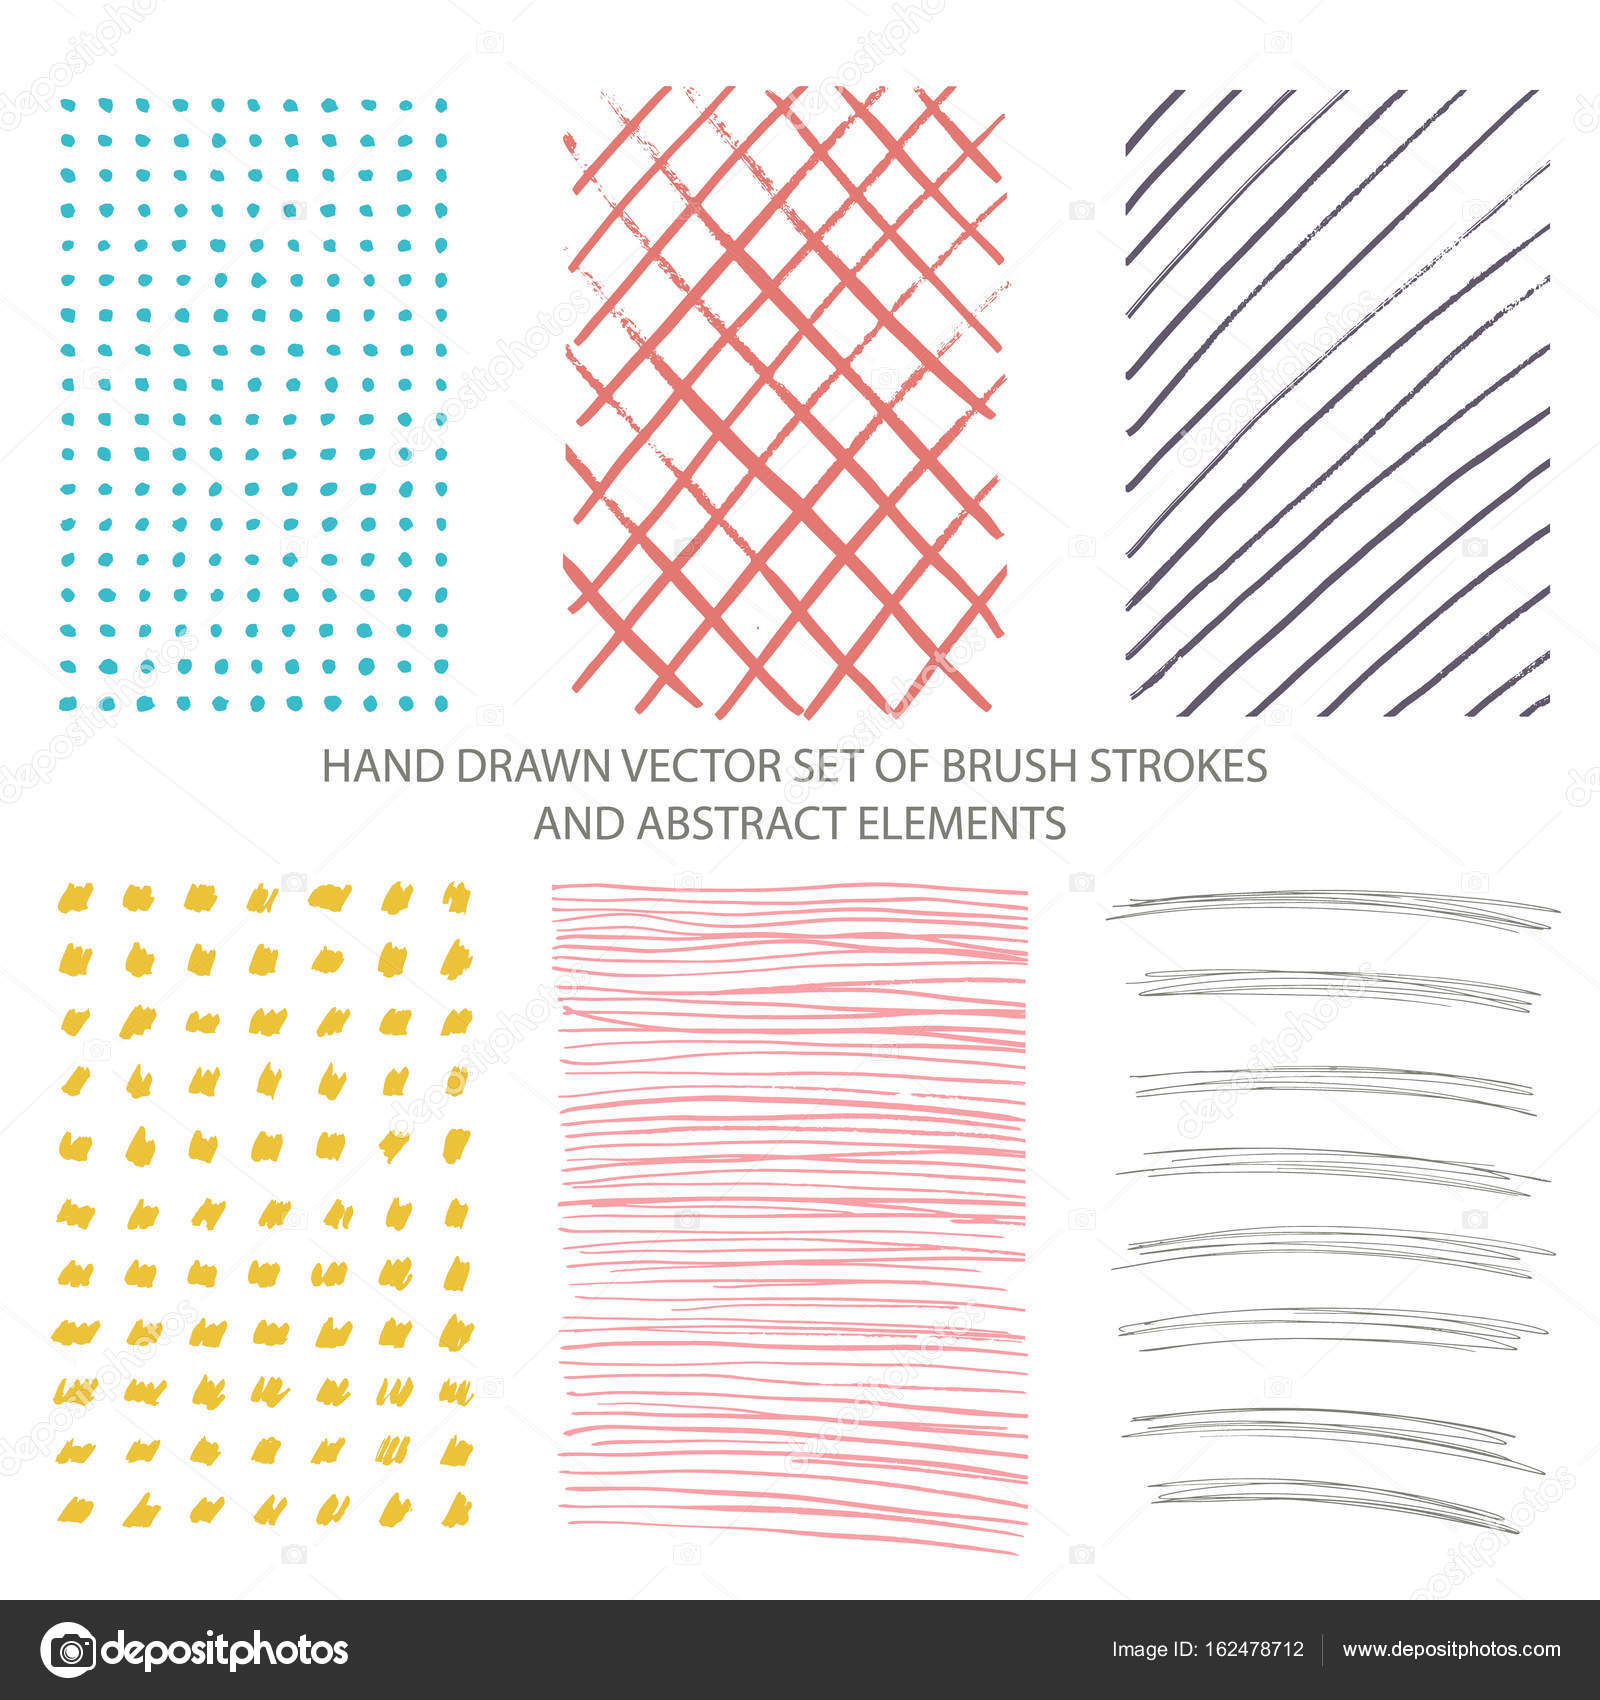 Vector Set Of Hand Drawn Brush Strokes Abstract Elements Ink Stains And Grunge Textures